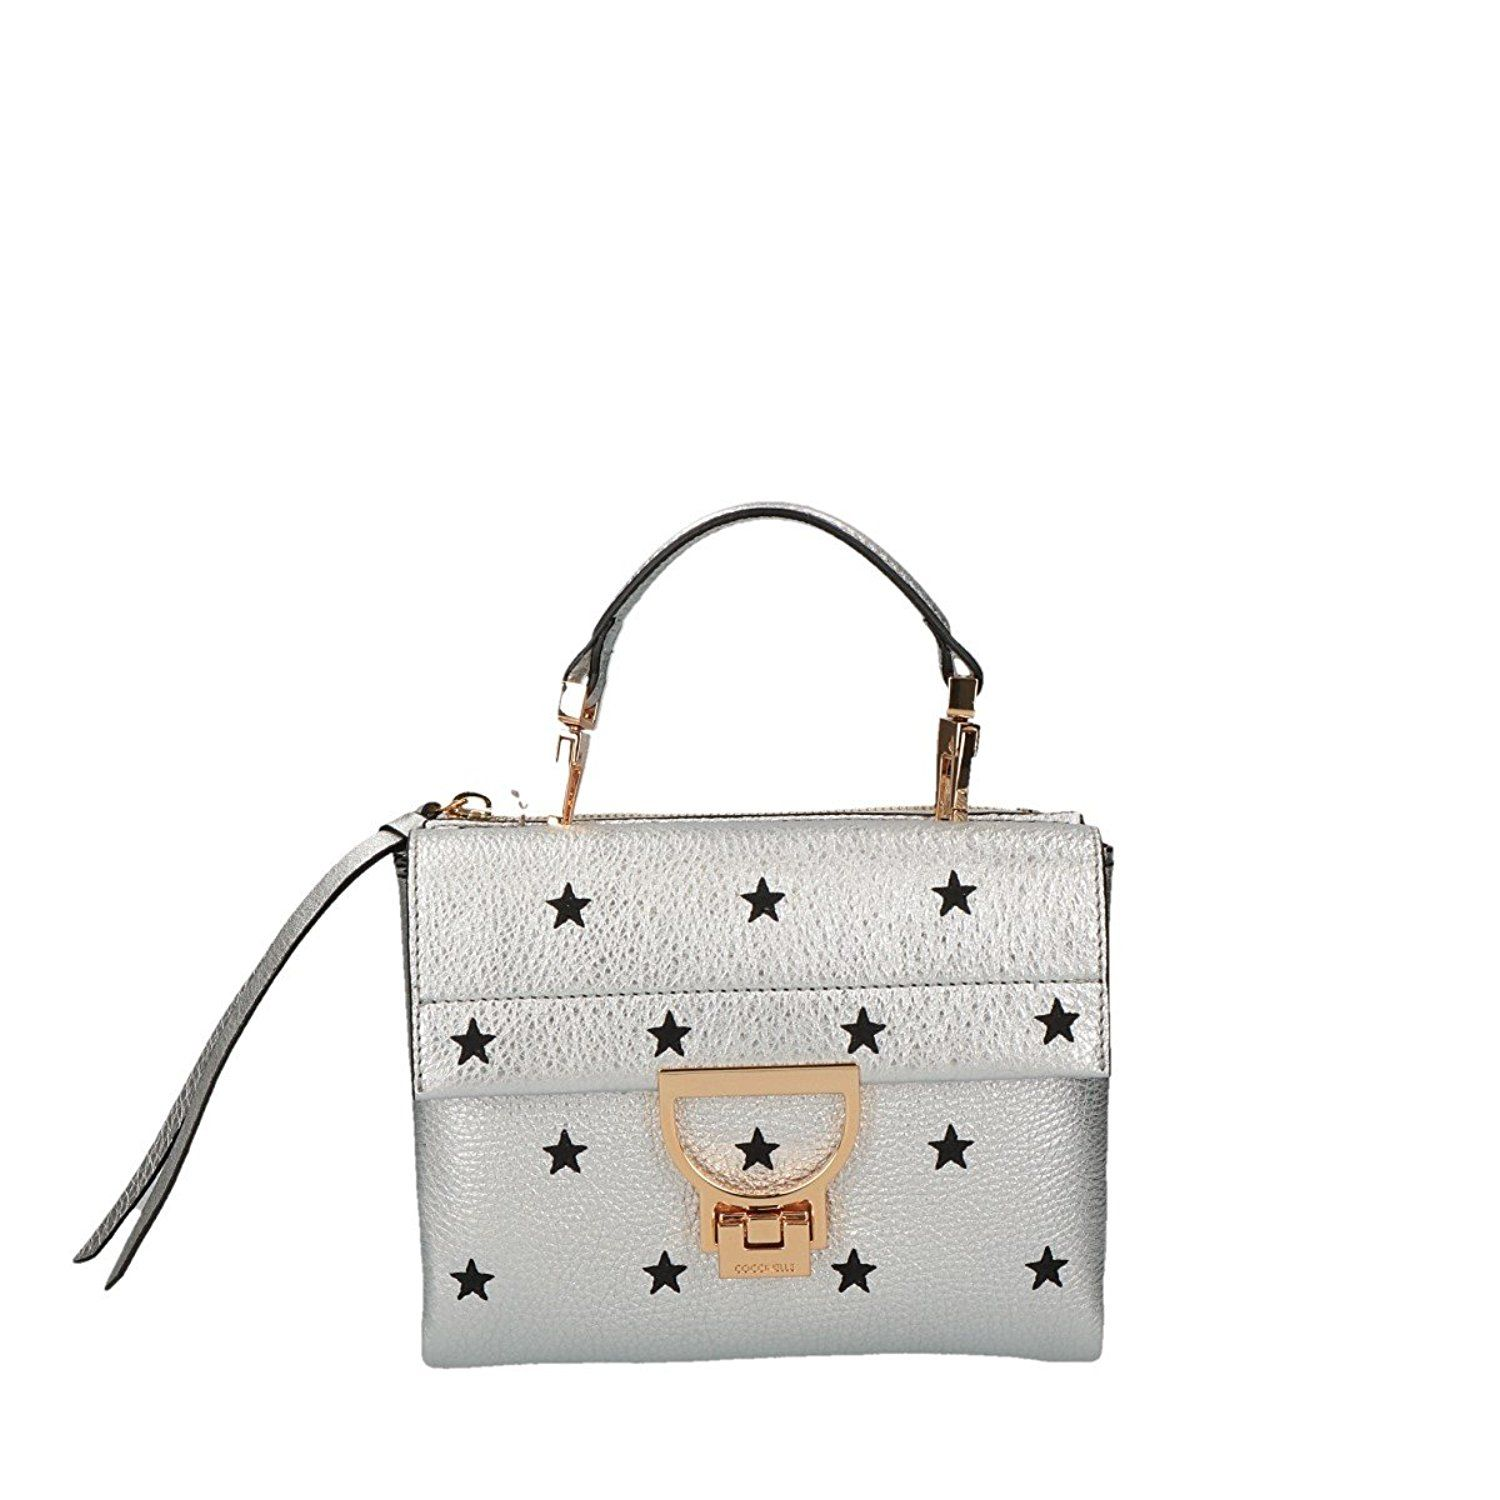 91fdd665d2542 Coccinelle Arlettis Stars Embroidery crossbody white: Amazon.co.uk: Clothing